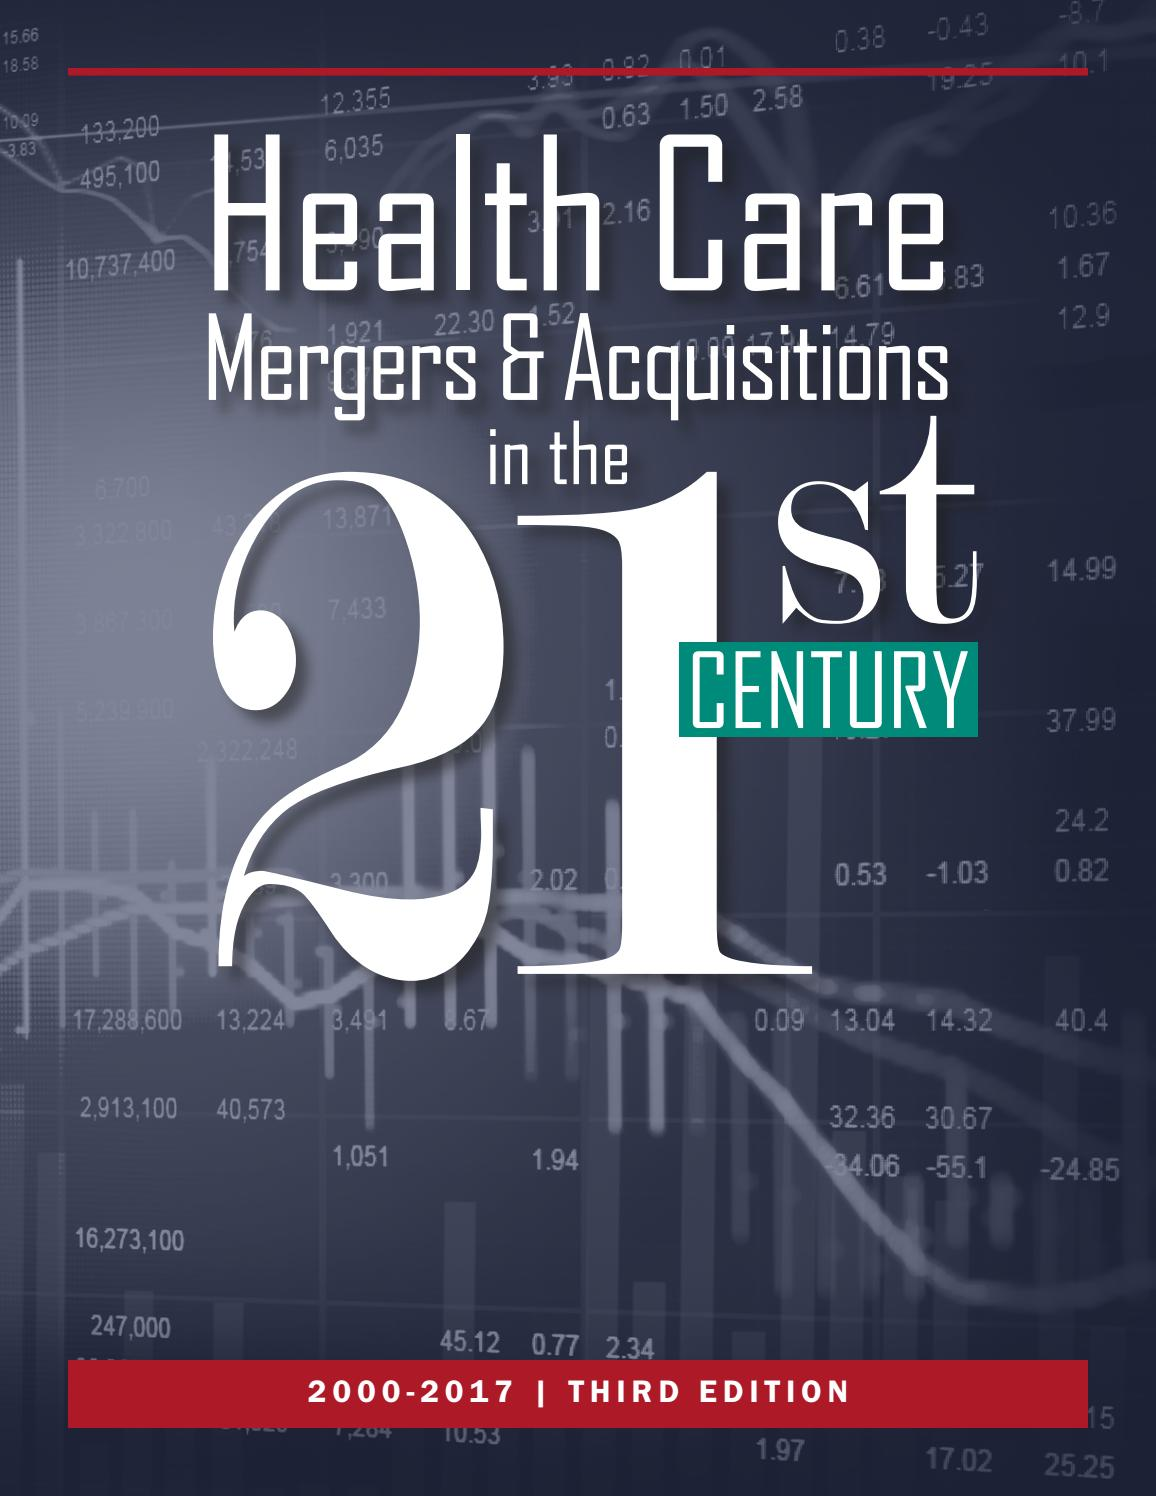 Healthcare dealmaking hits record fueled by Cigna, Takeda pictures